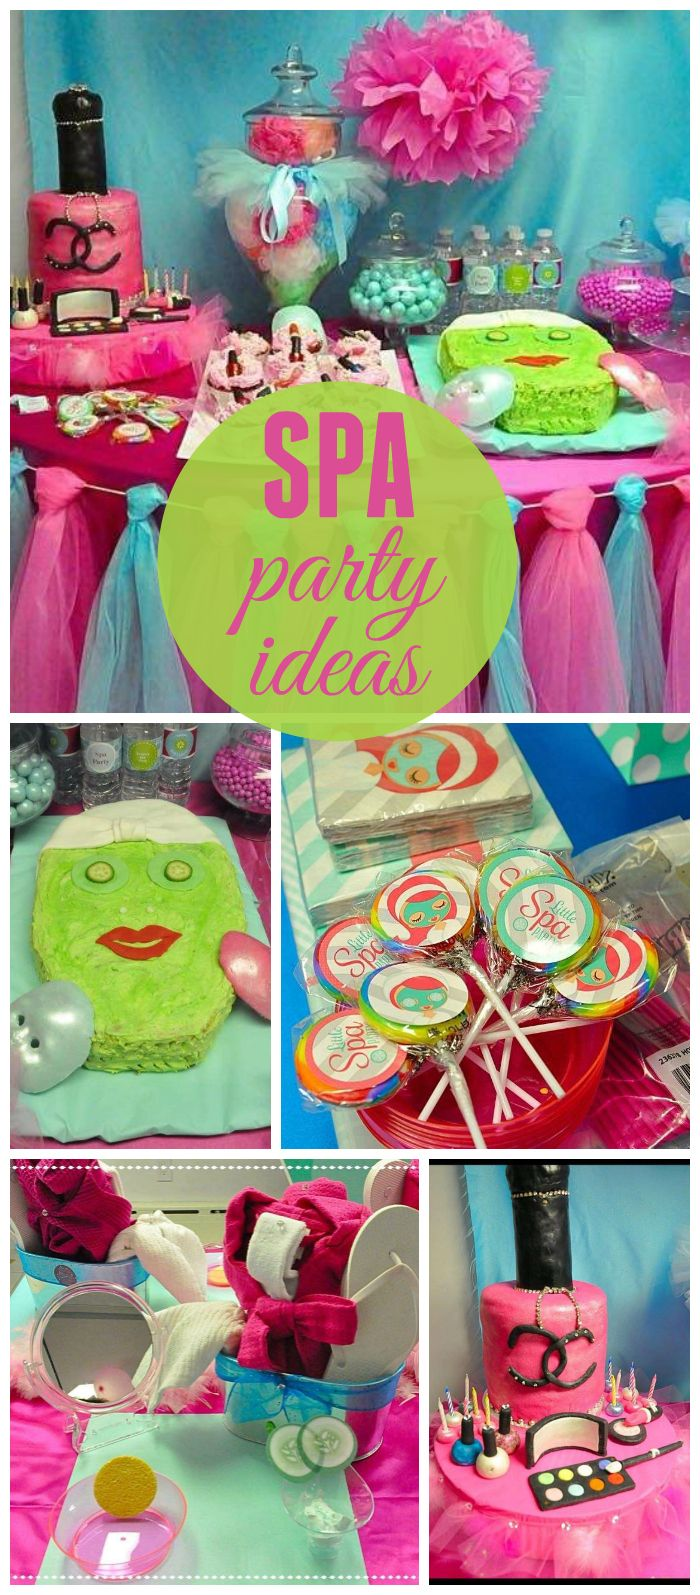 images How to Have a Spa Slumber Party